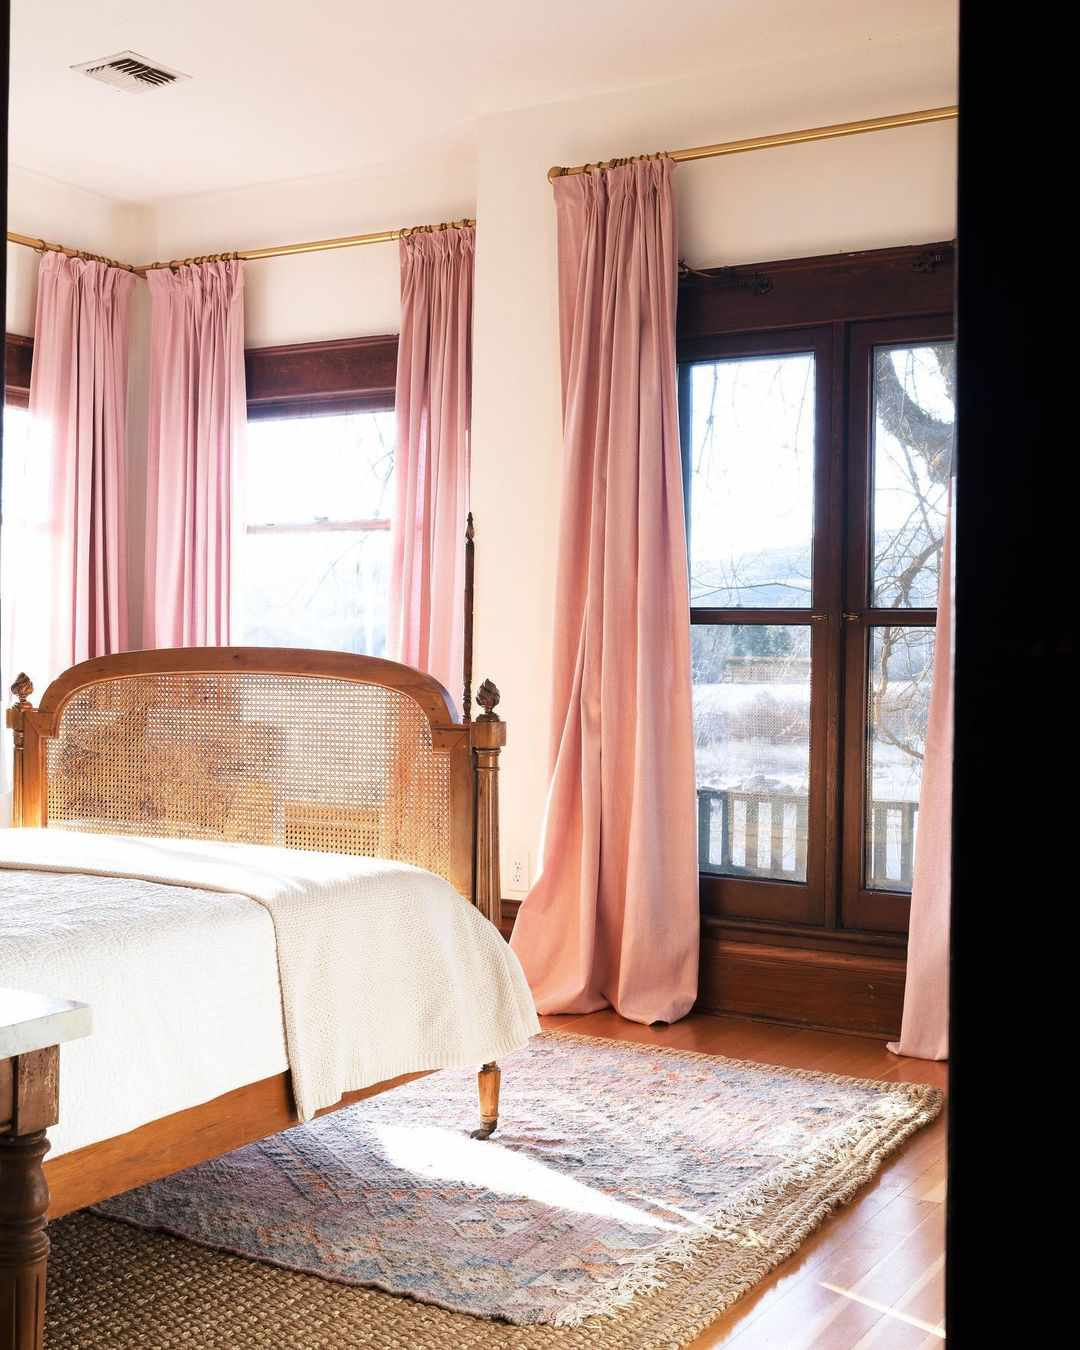 Pink drapes hang near the ceiling in a bedroom.